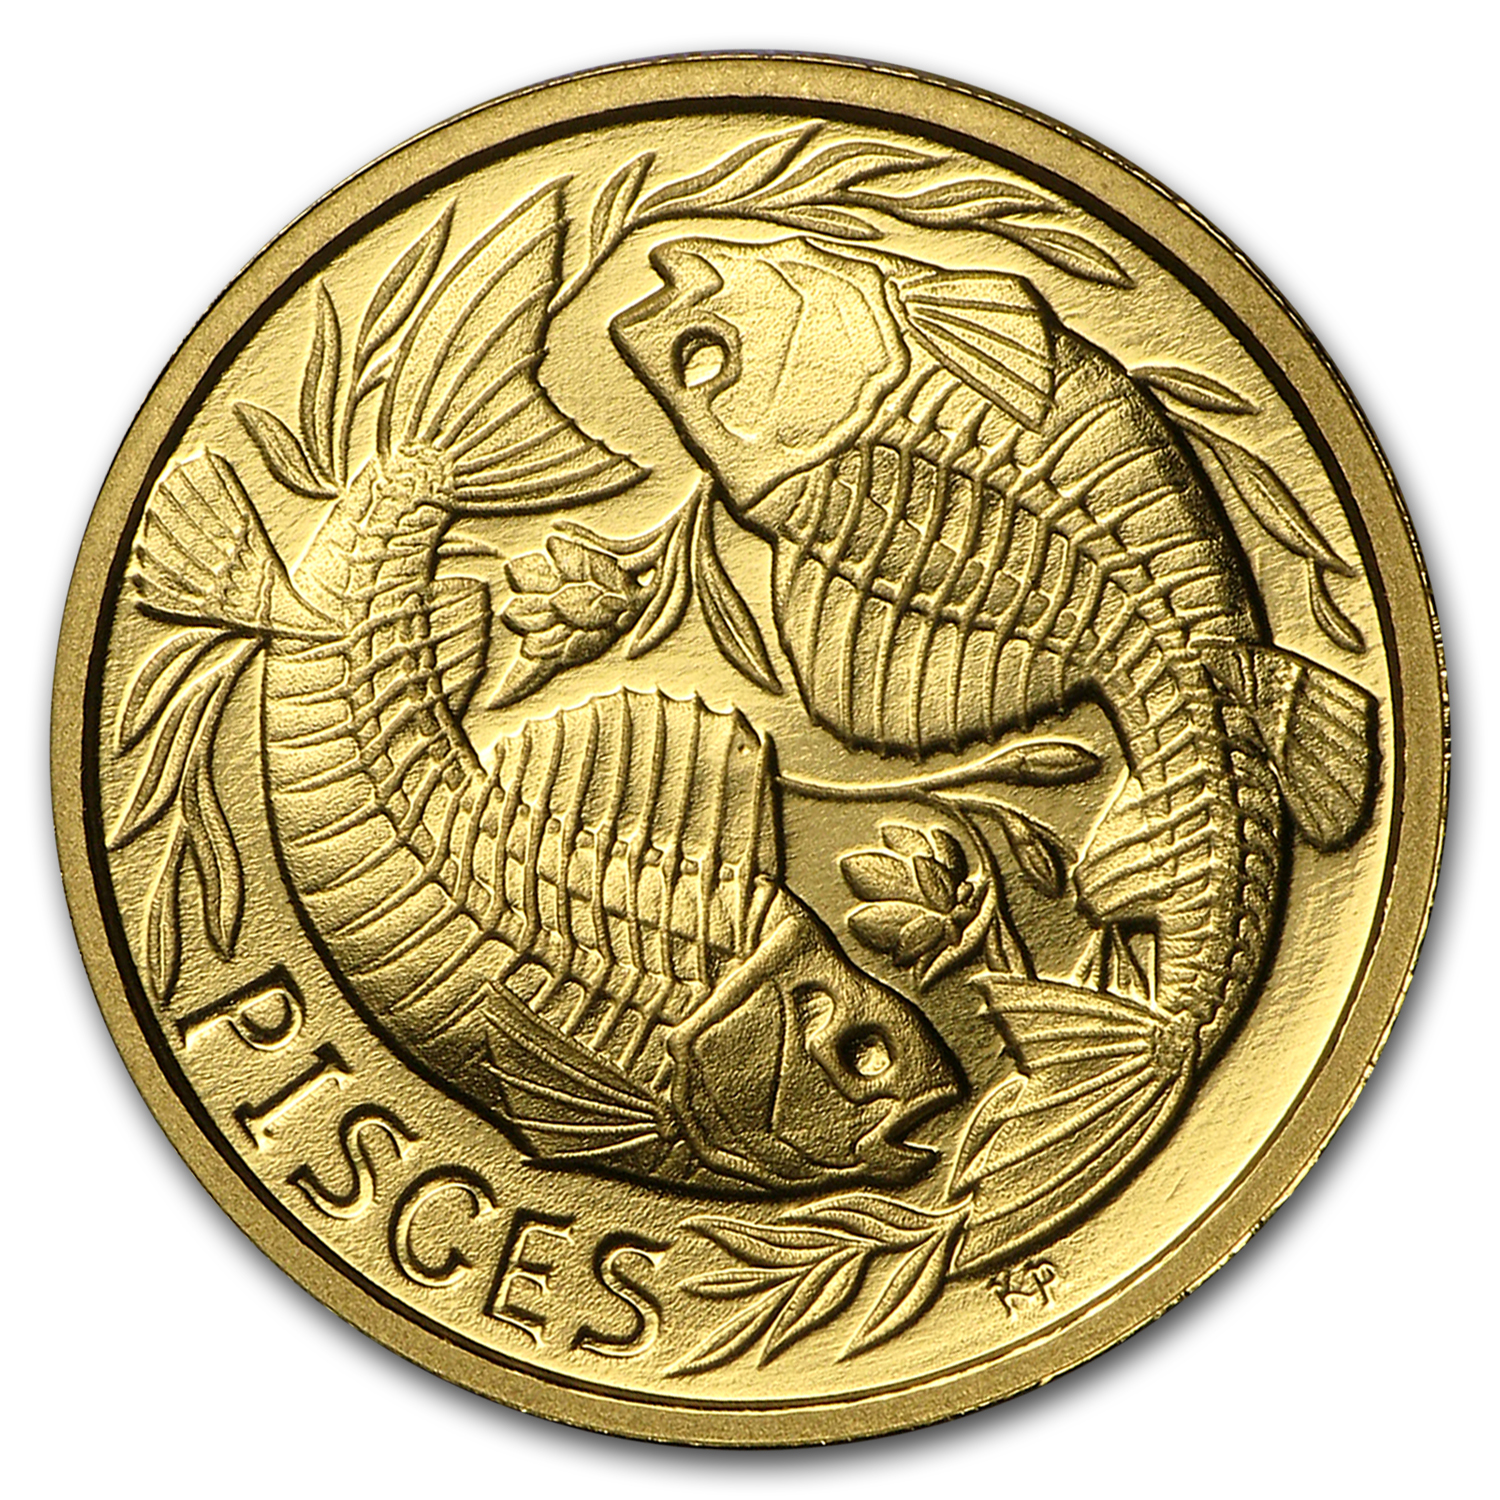 1/10 oz Gold Proof Round - Zodiac Skull Series (Pisces)